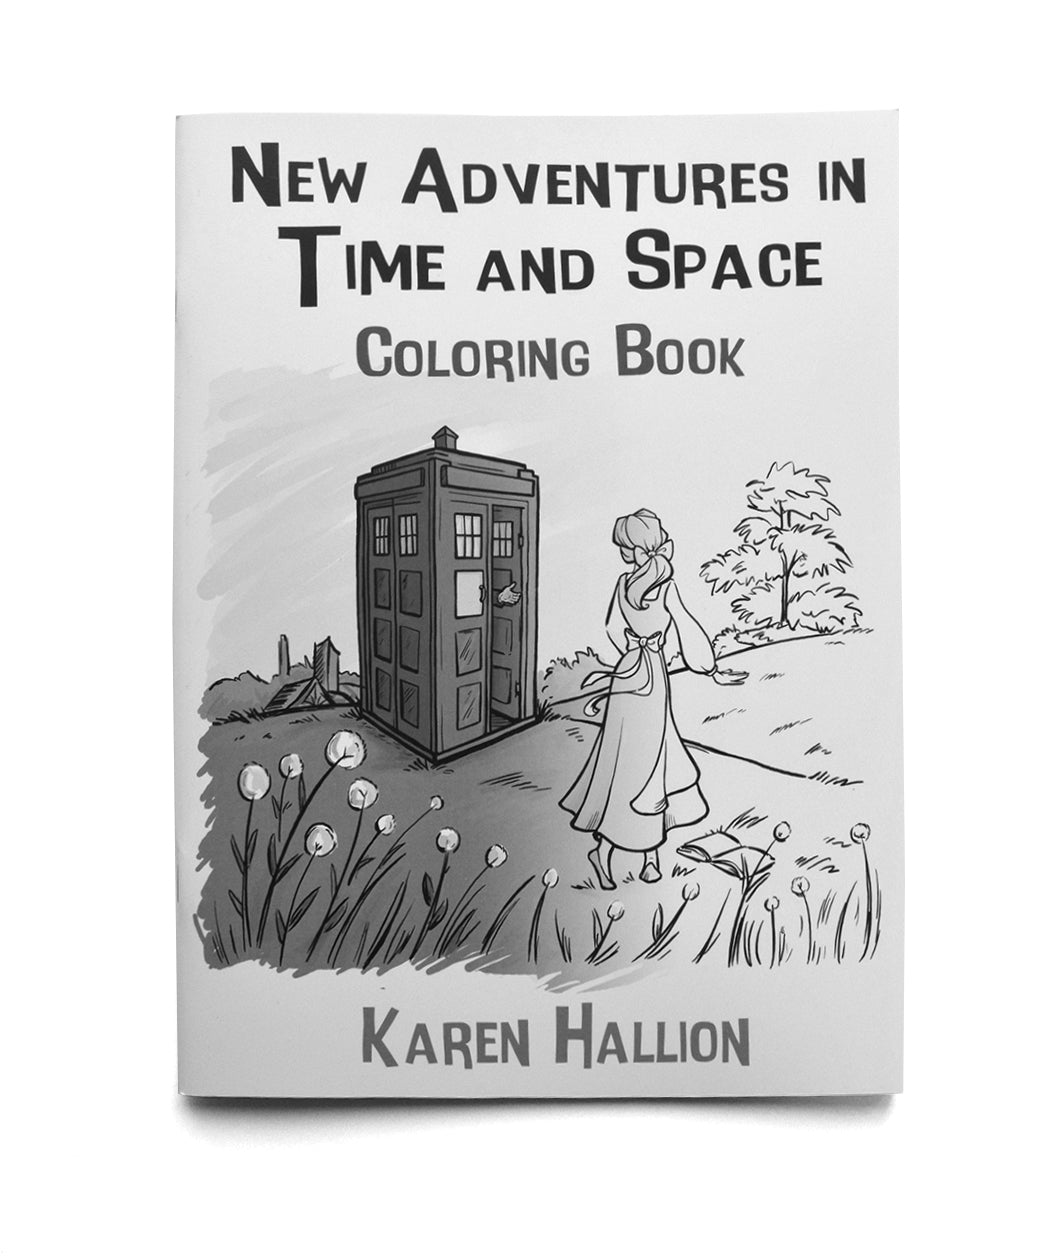 New Adventures in Time and Space Coloring Book for Adults